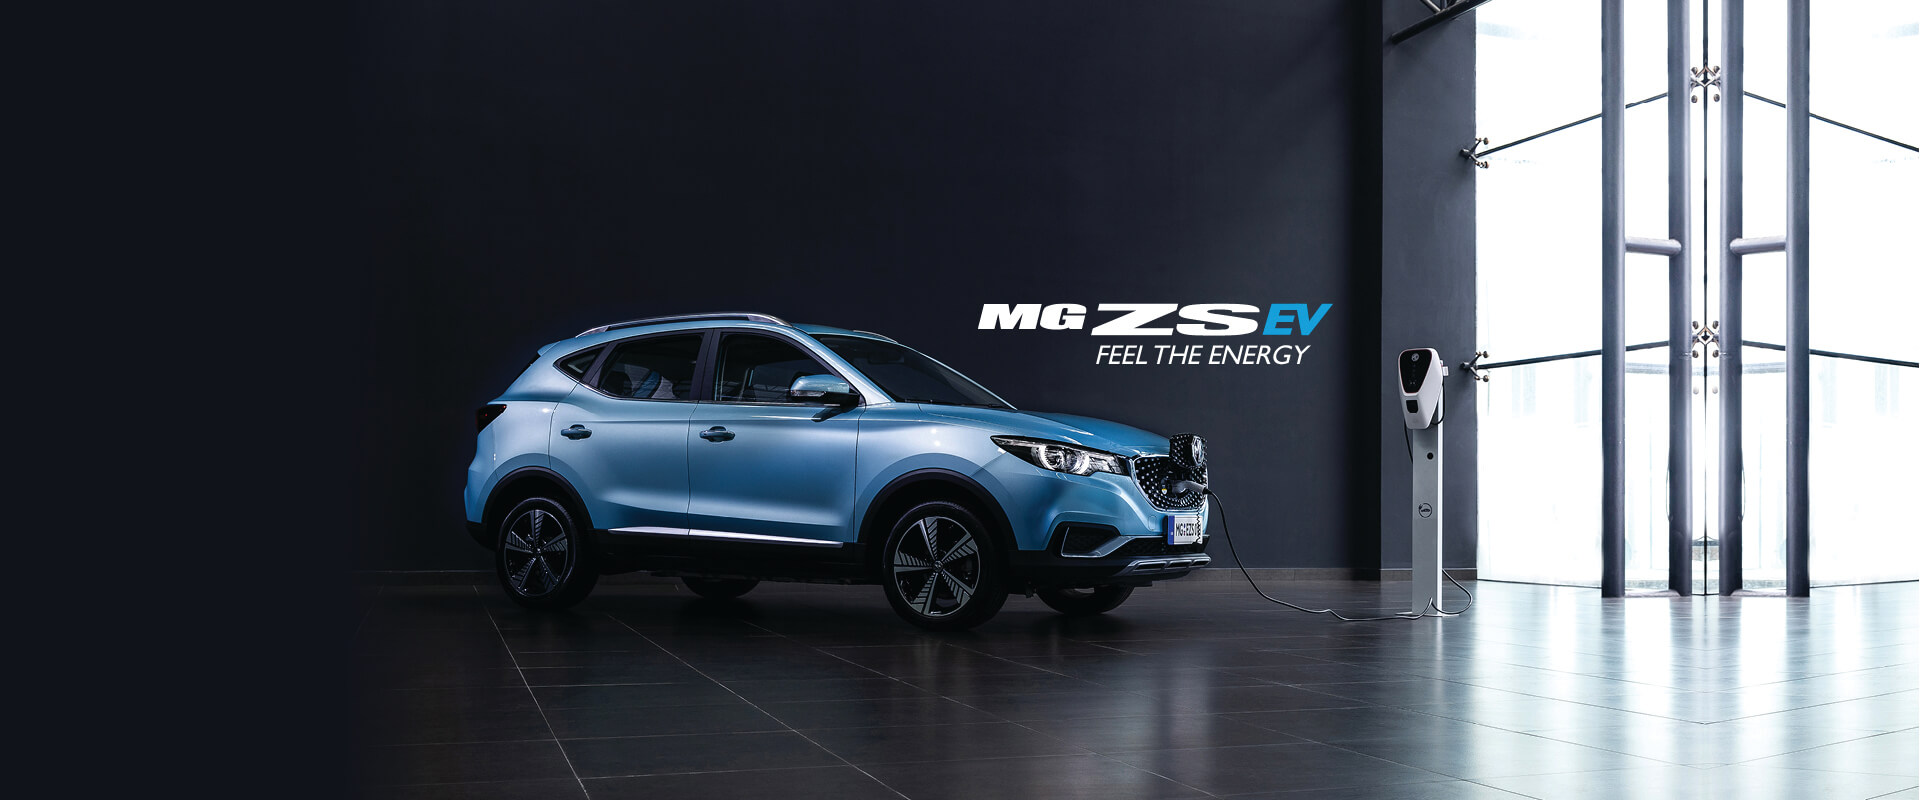 The new MG ZS EV is the family-friendly electric car, designed for those who want all the advantages of a zero-emissions vehicle without compromising on practicality or style.